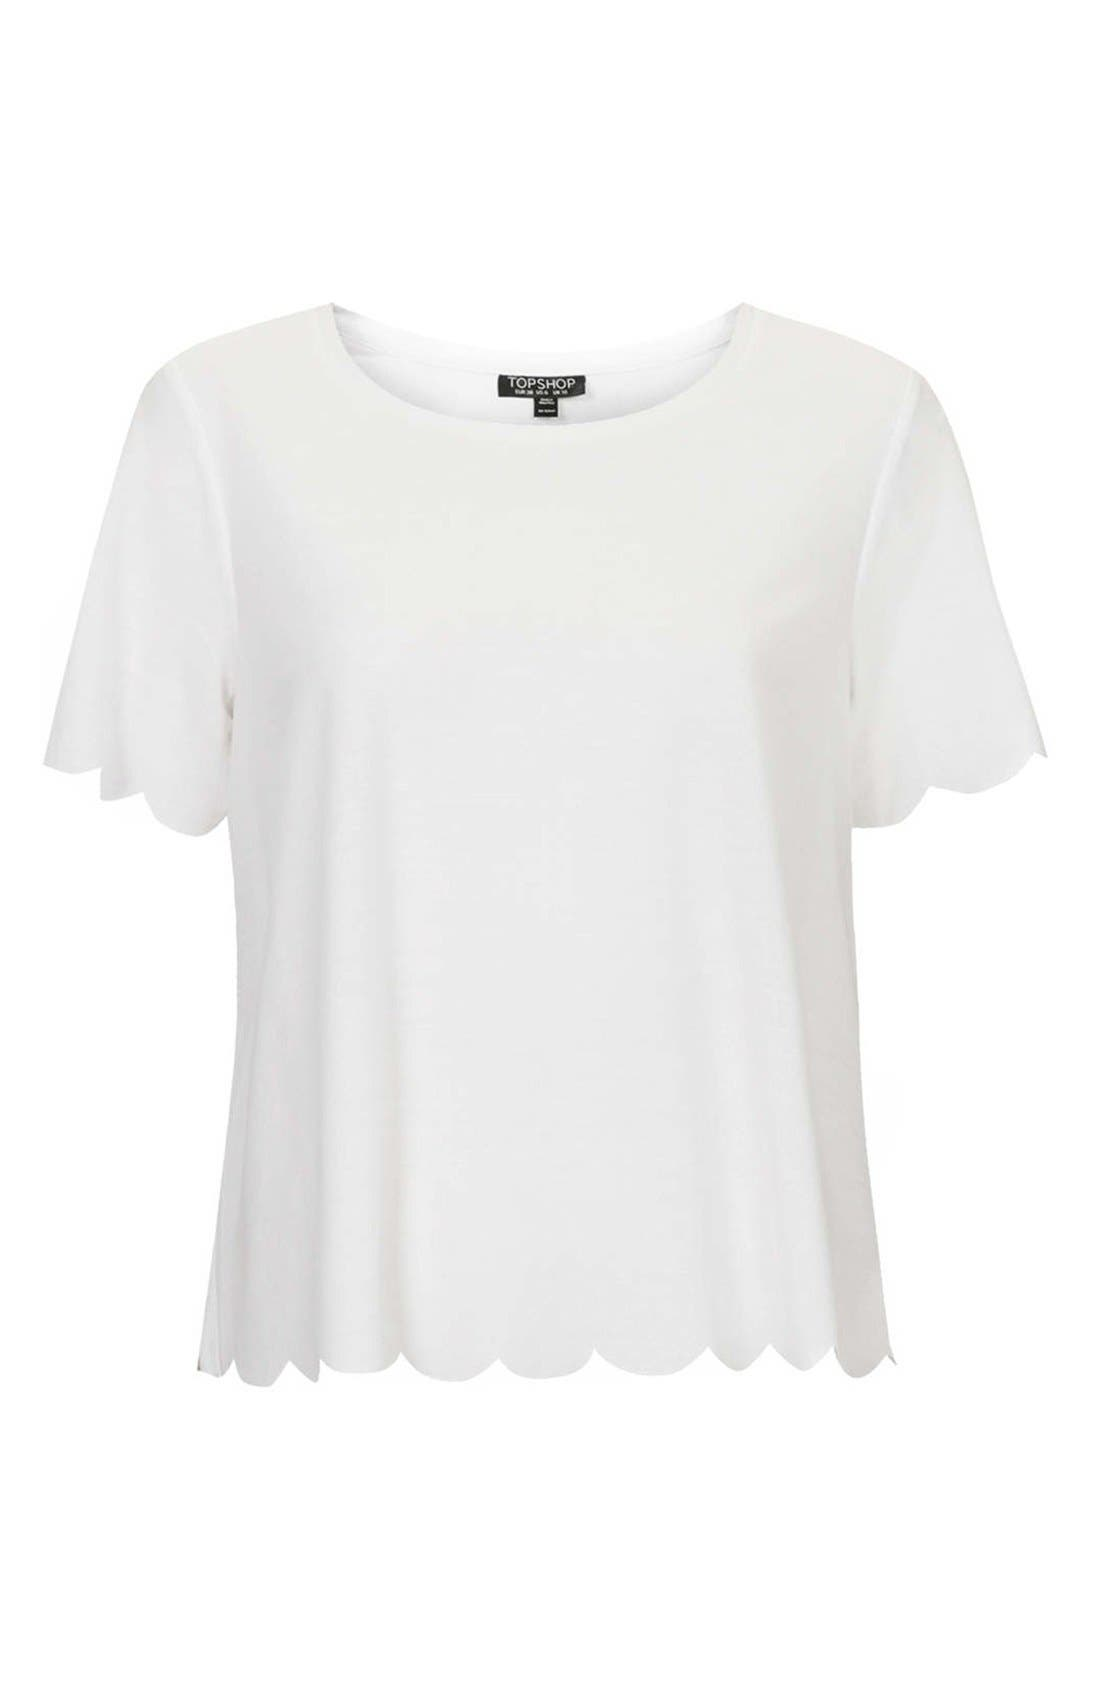 Alternate Image 4  - Topshop Scallop Frill Tee